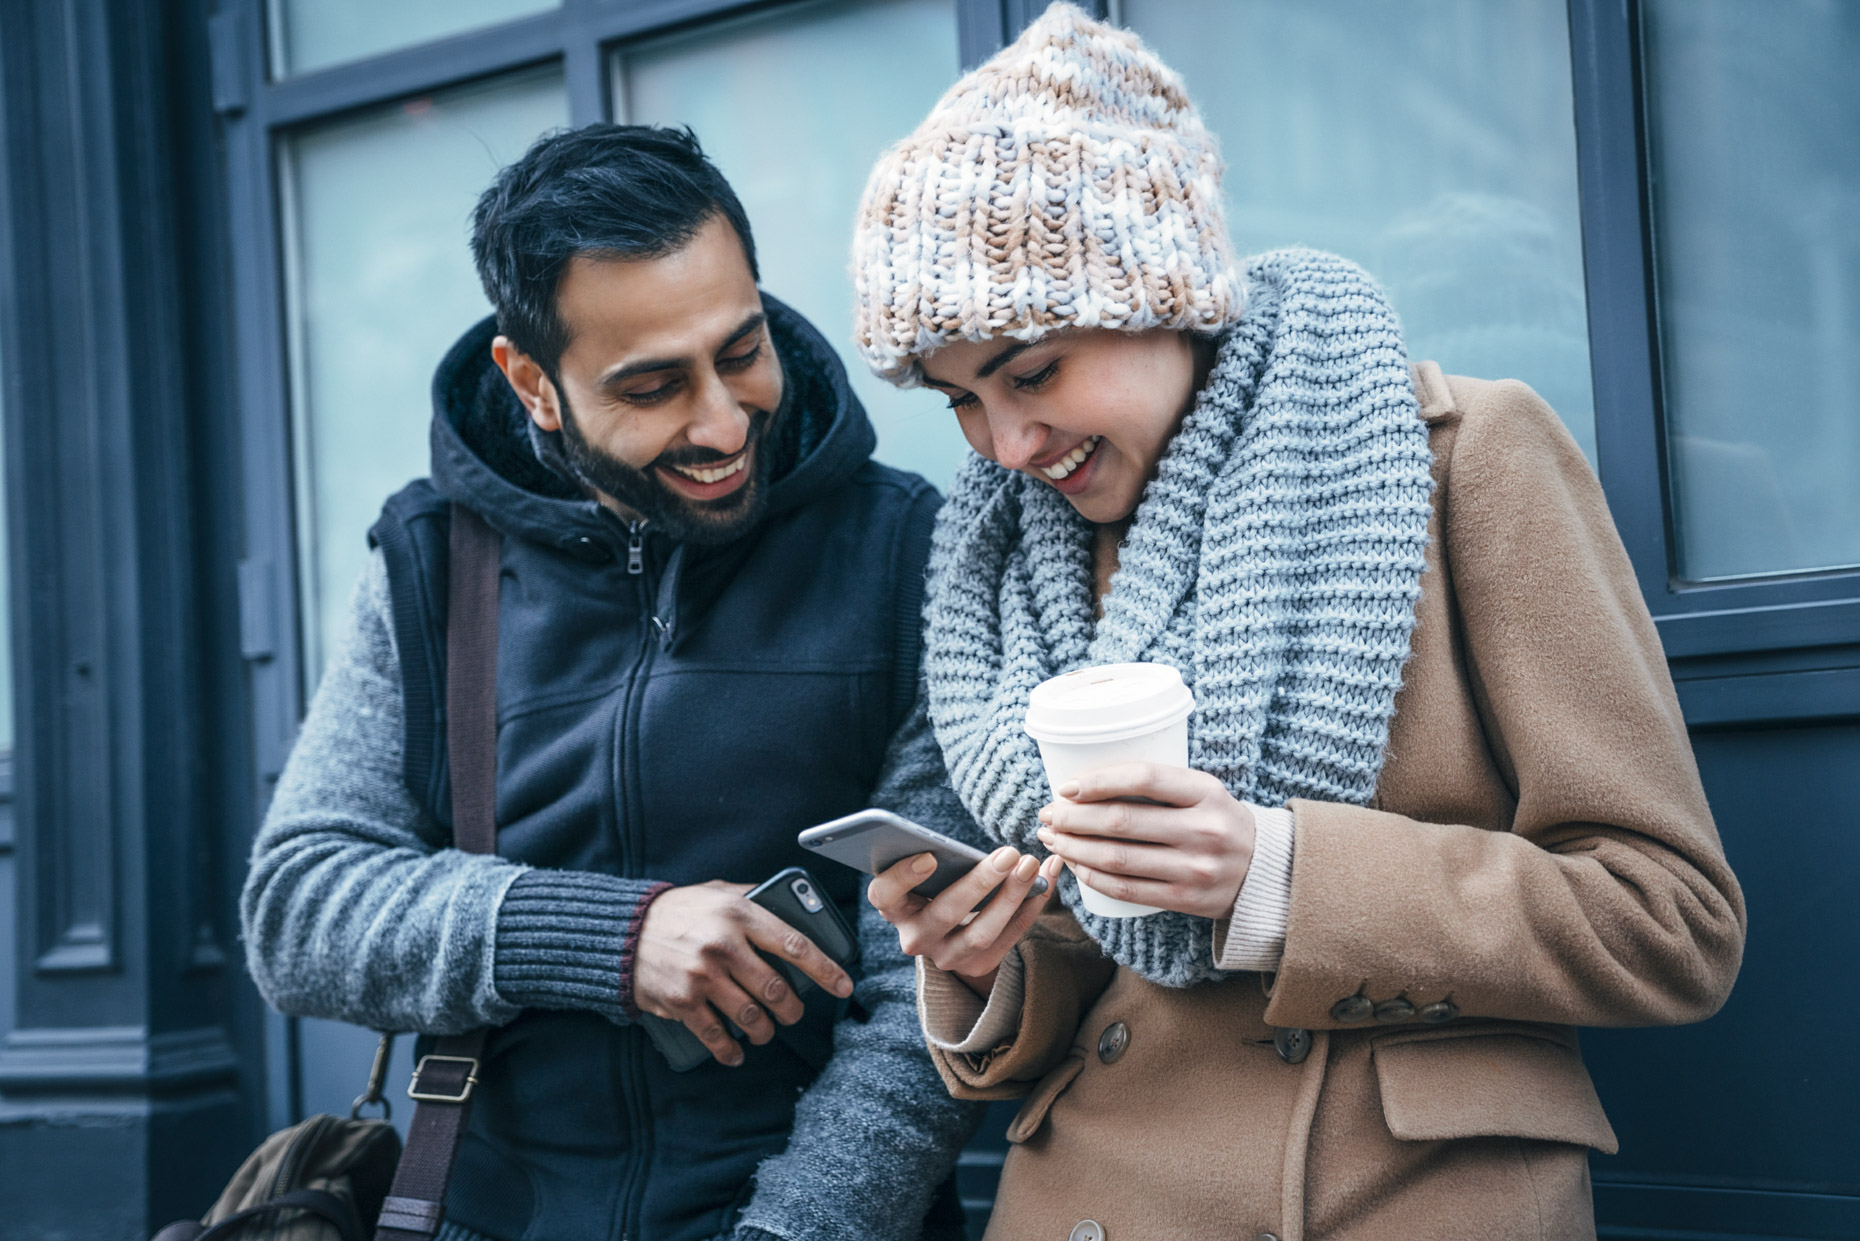 couple-winter-clothes-coffee-laughing-cellphone-Inti-St-Clair-LYDA_201612145776